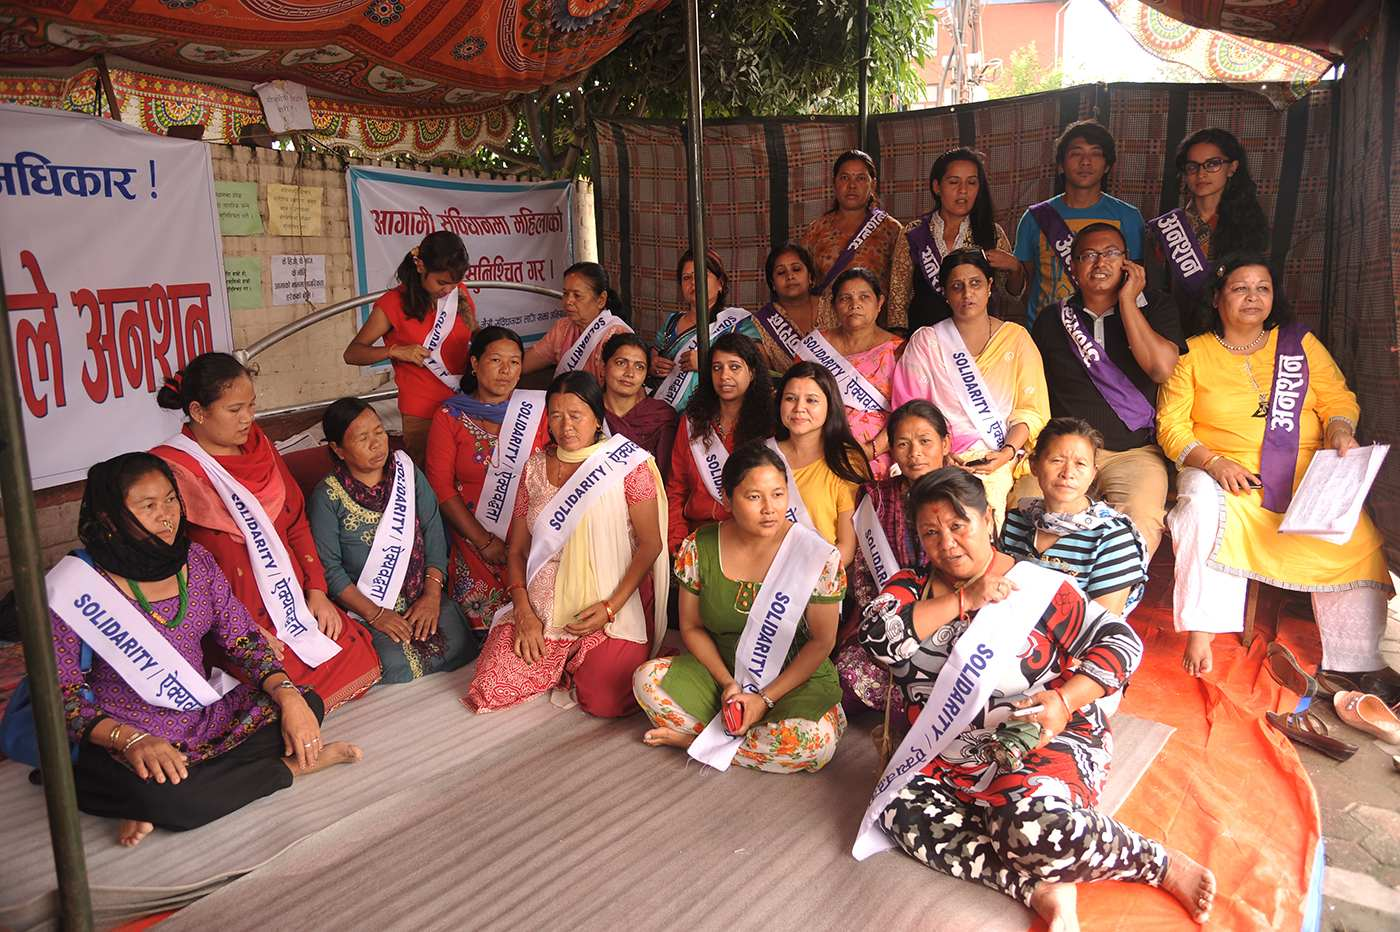 Hunger Strike demanding equal rights of women in the new constitution